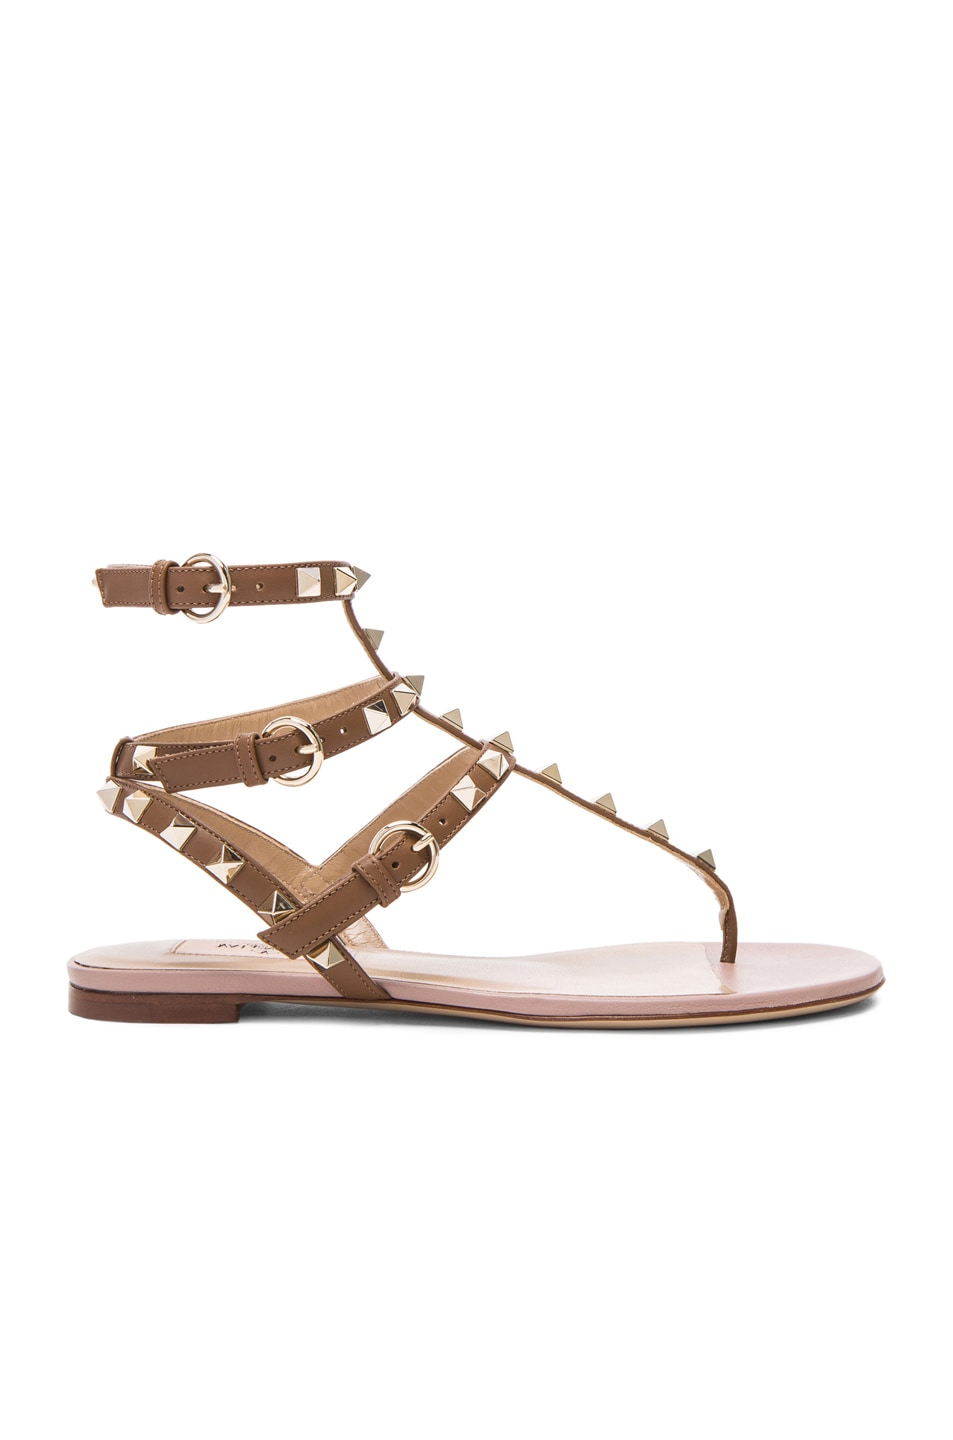 Image 1 of Valentino Rockstud Gladiator Leather Sandals T.05 in Deep Cuir